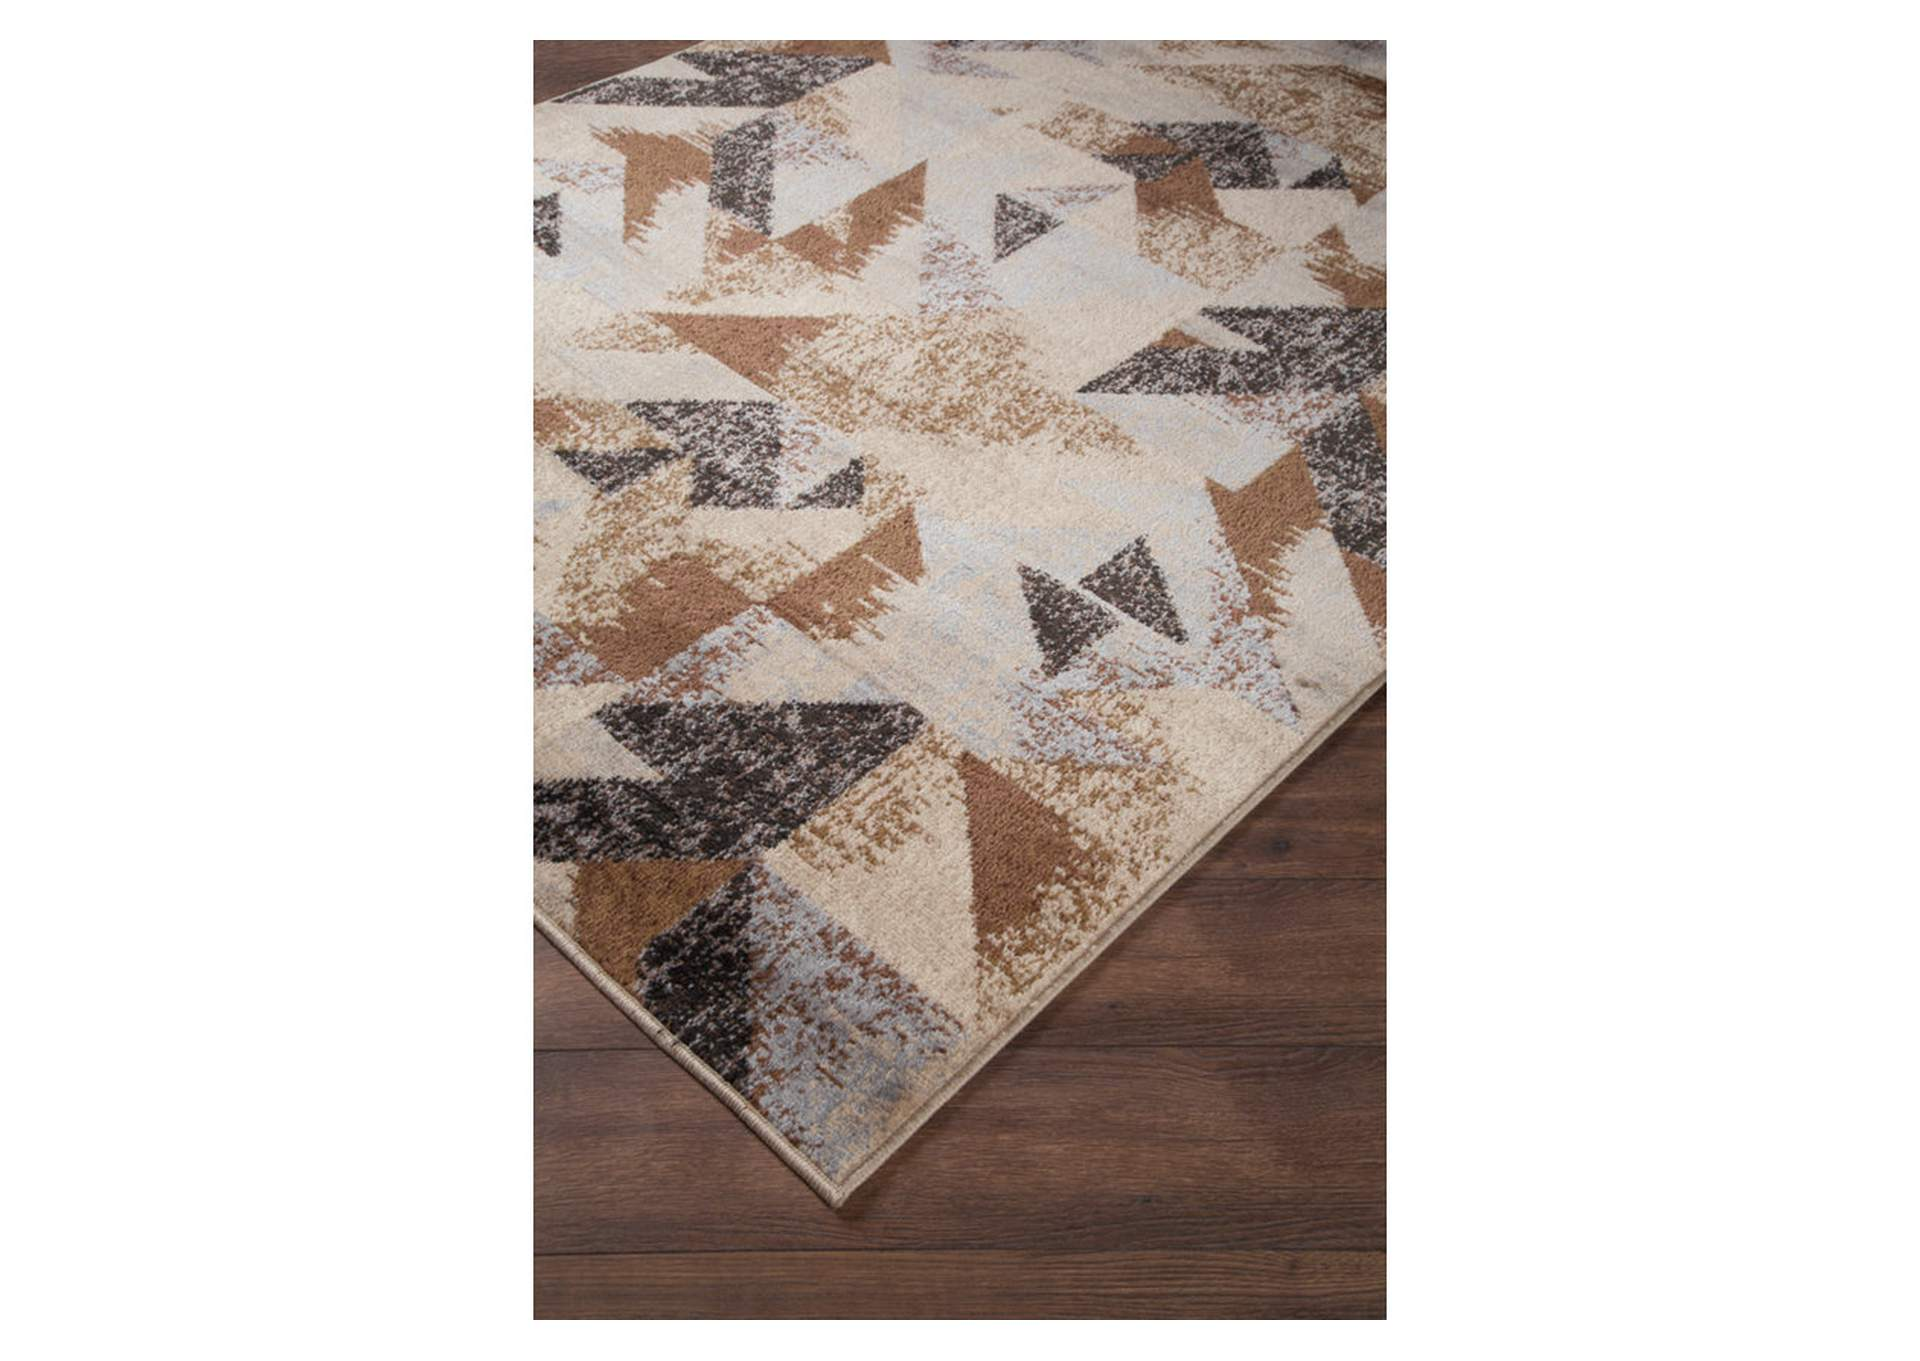 Jun Multi Medium Rug,Signature Design By Ashley